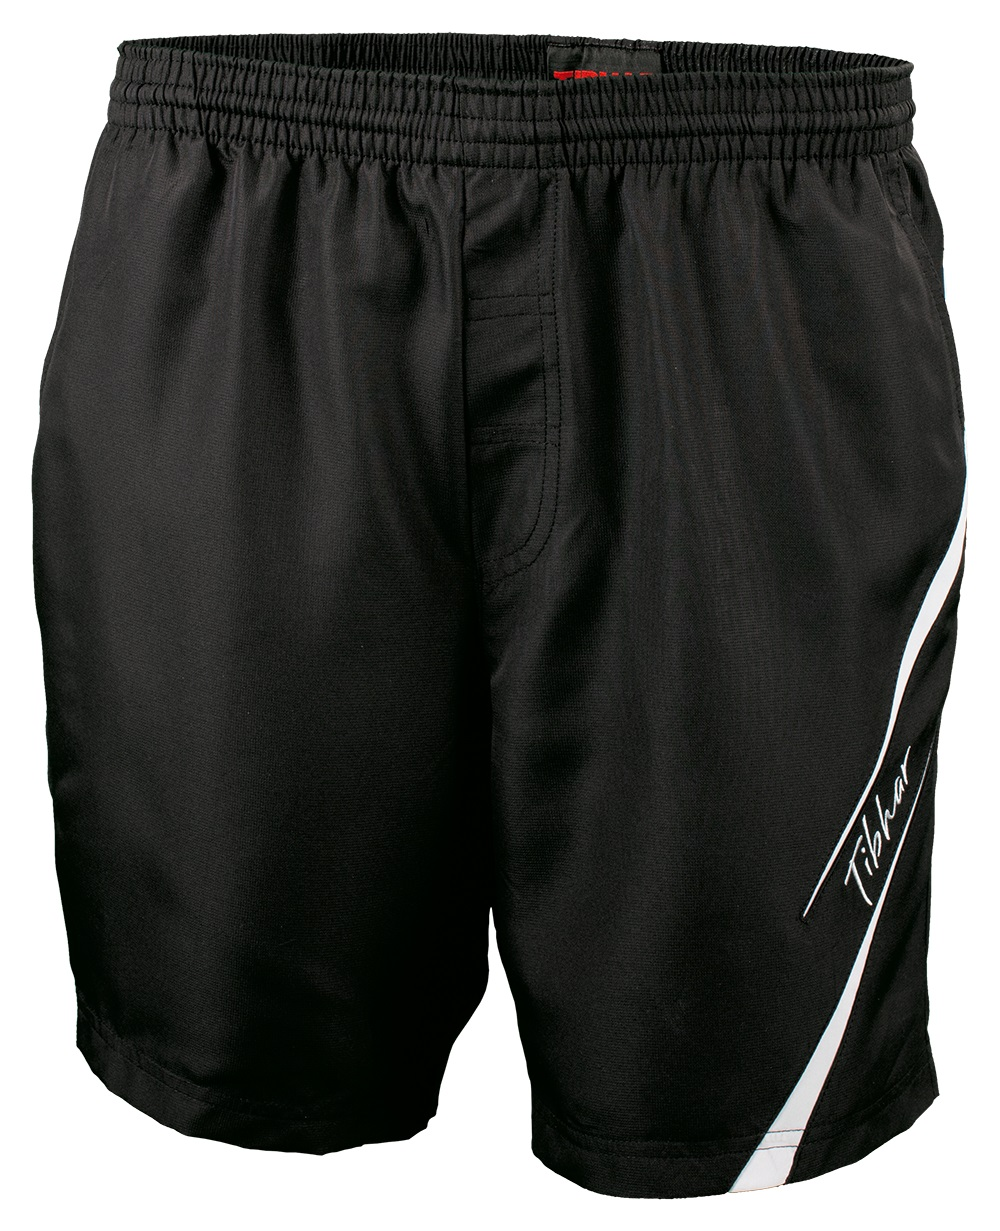 Tibhar Orbit Table Tennis Shorts Bribar Table Tennis